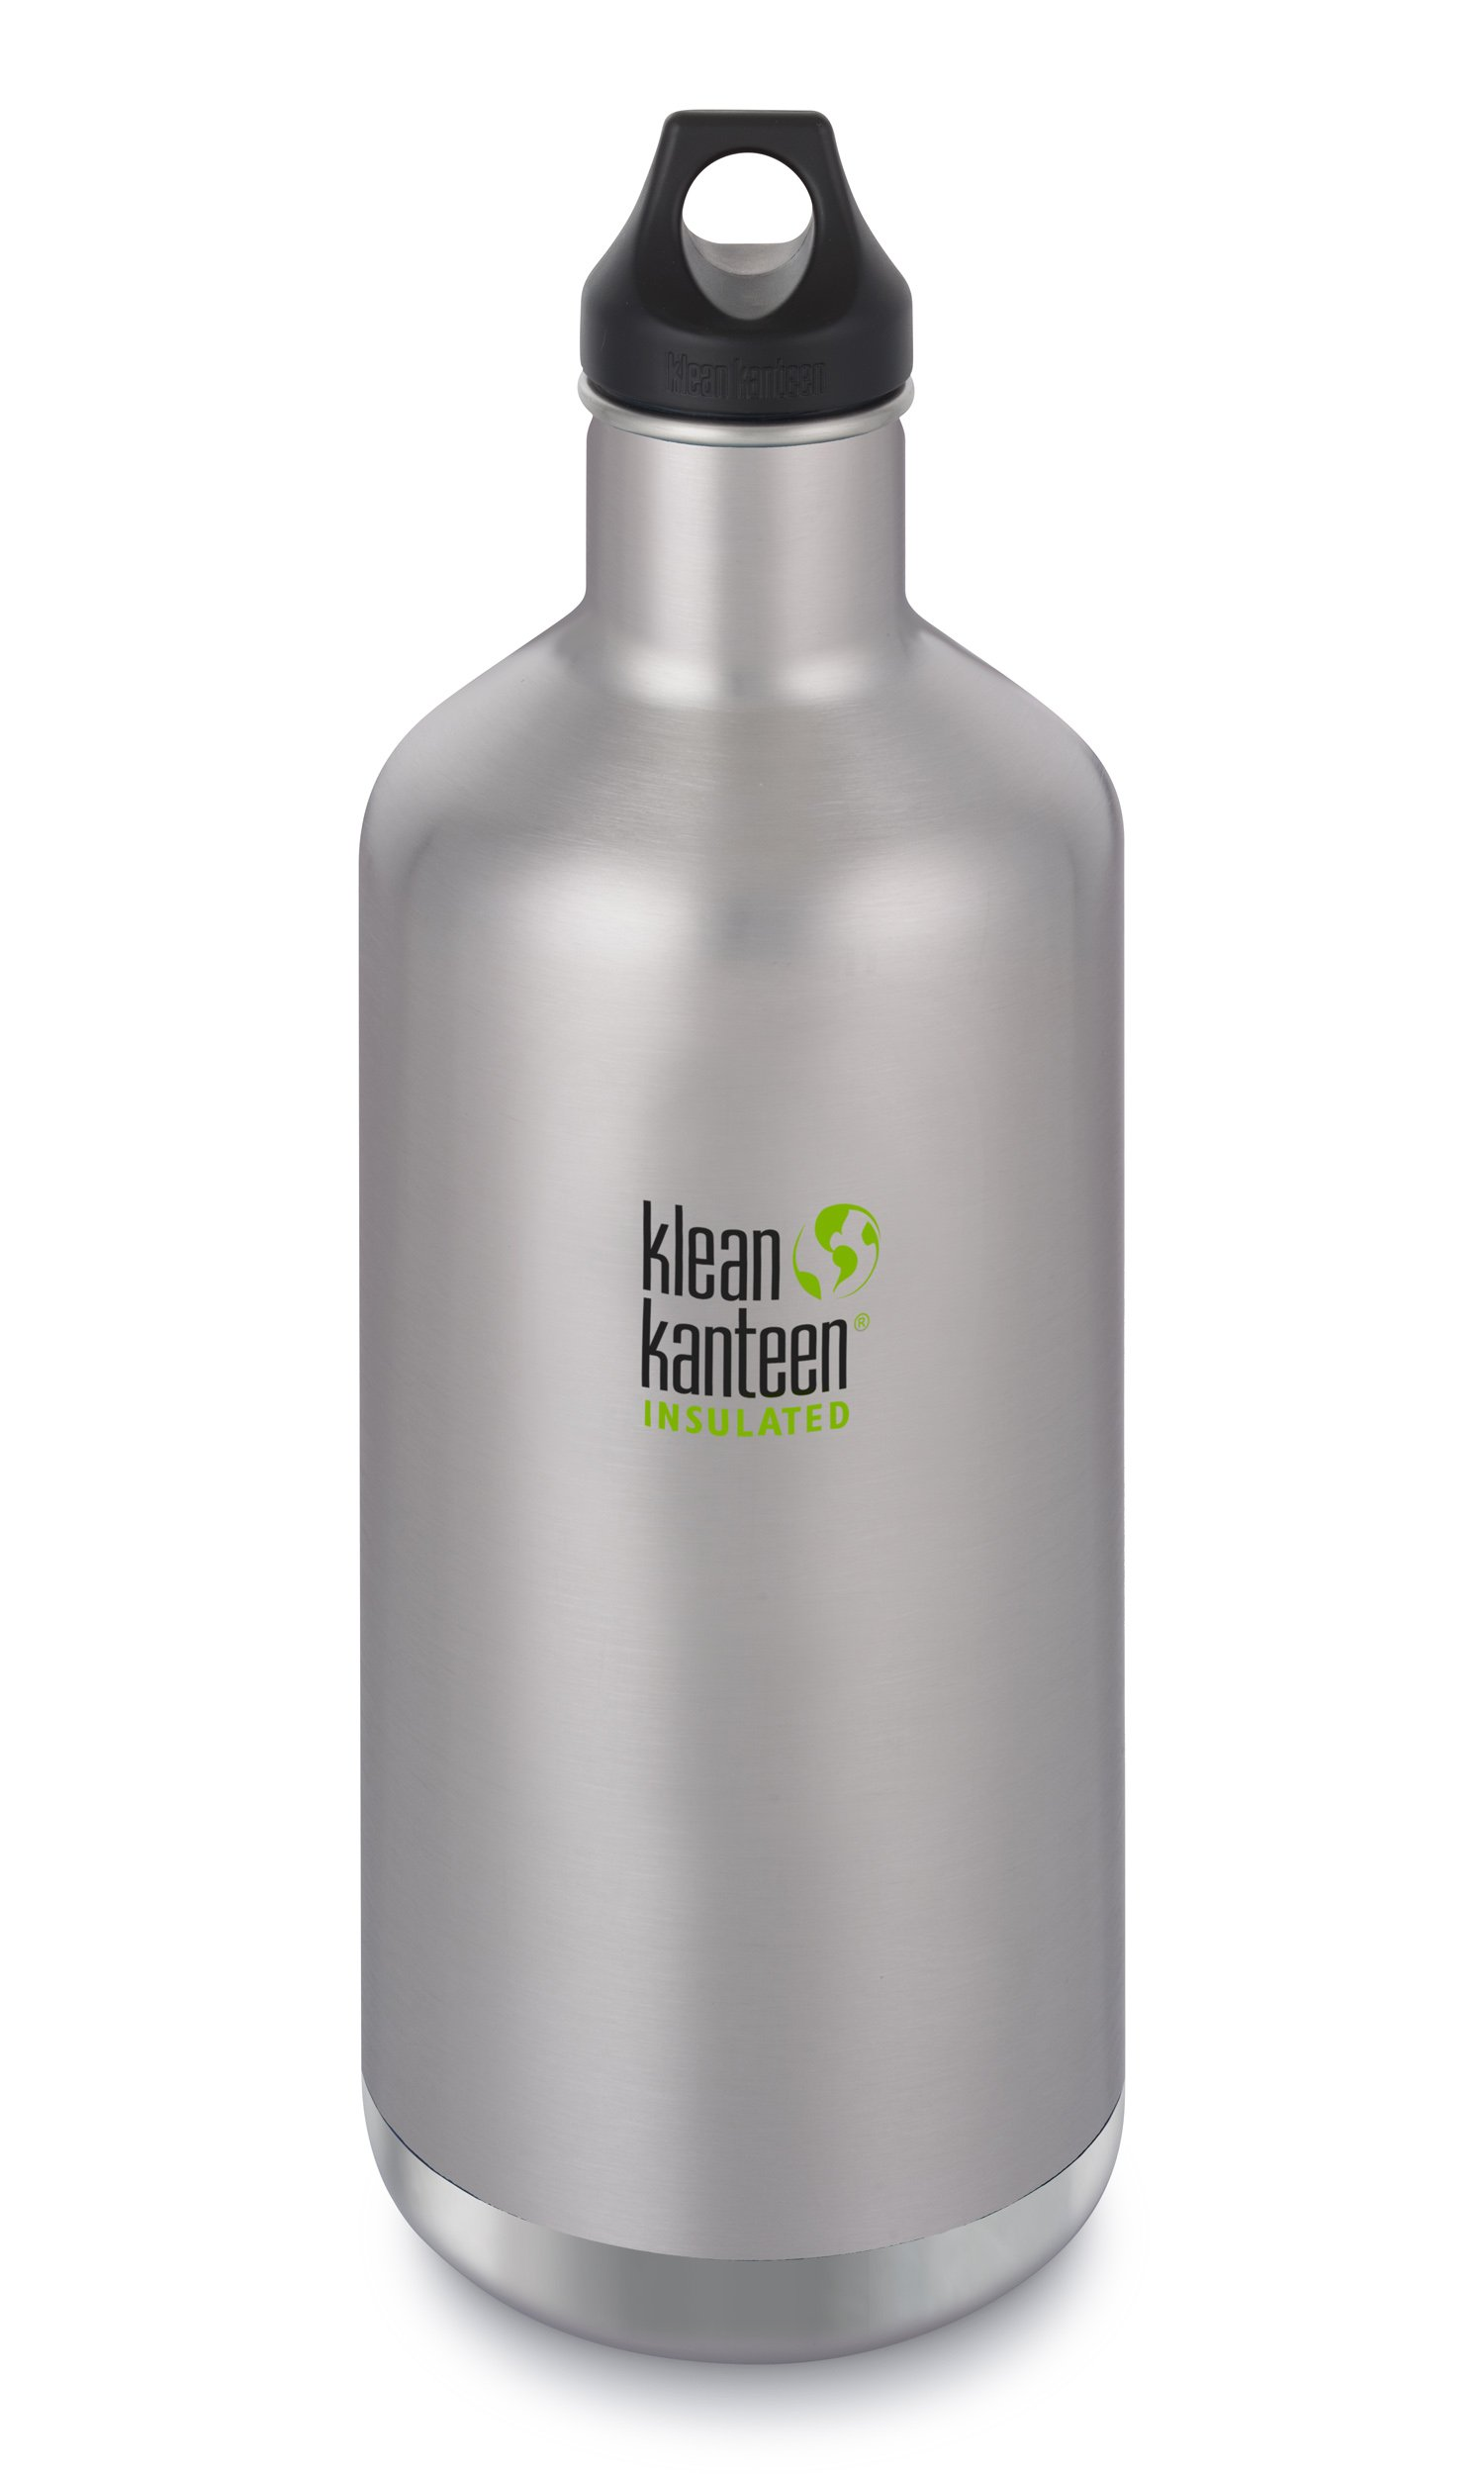 Klean Kanteen Classic Stainless Steel Double Wall Insulated Water Bottle with Loop Cap, 64-Ounce, Brushed Stainless by Klean Kanteen